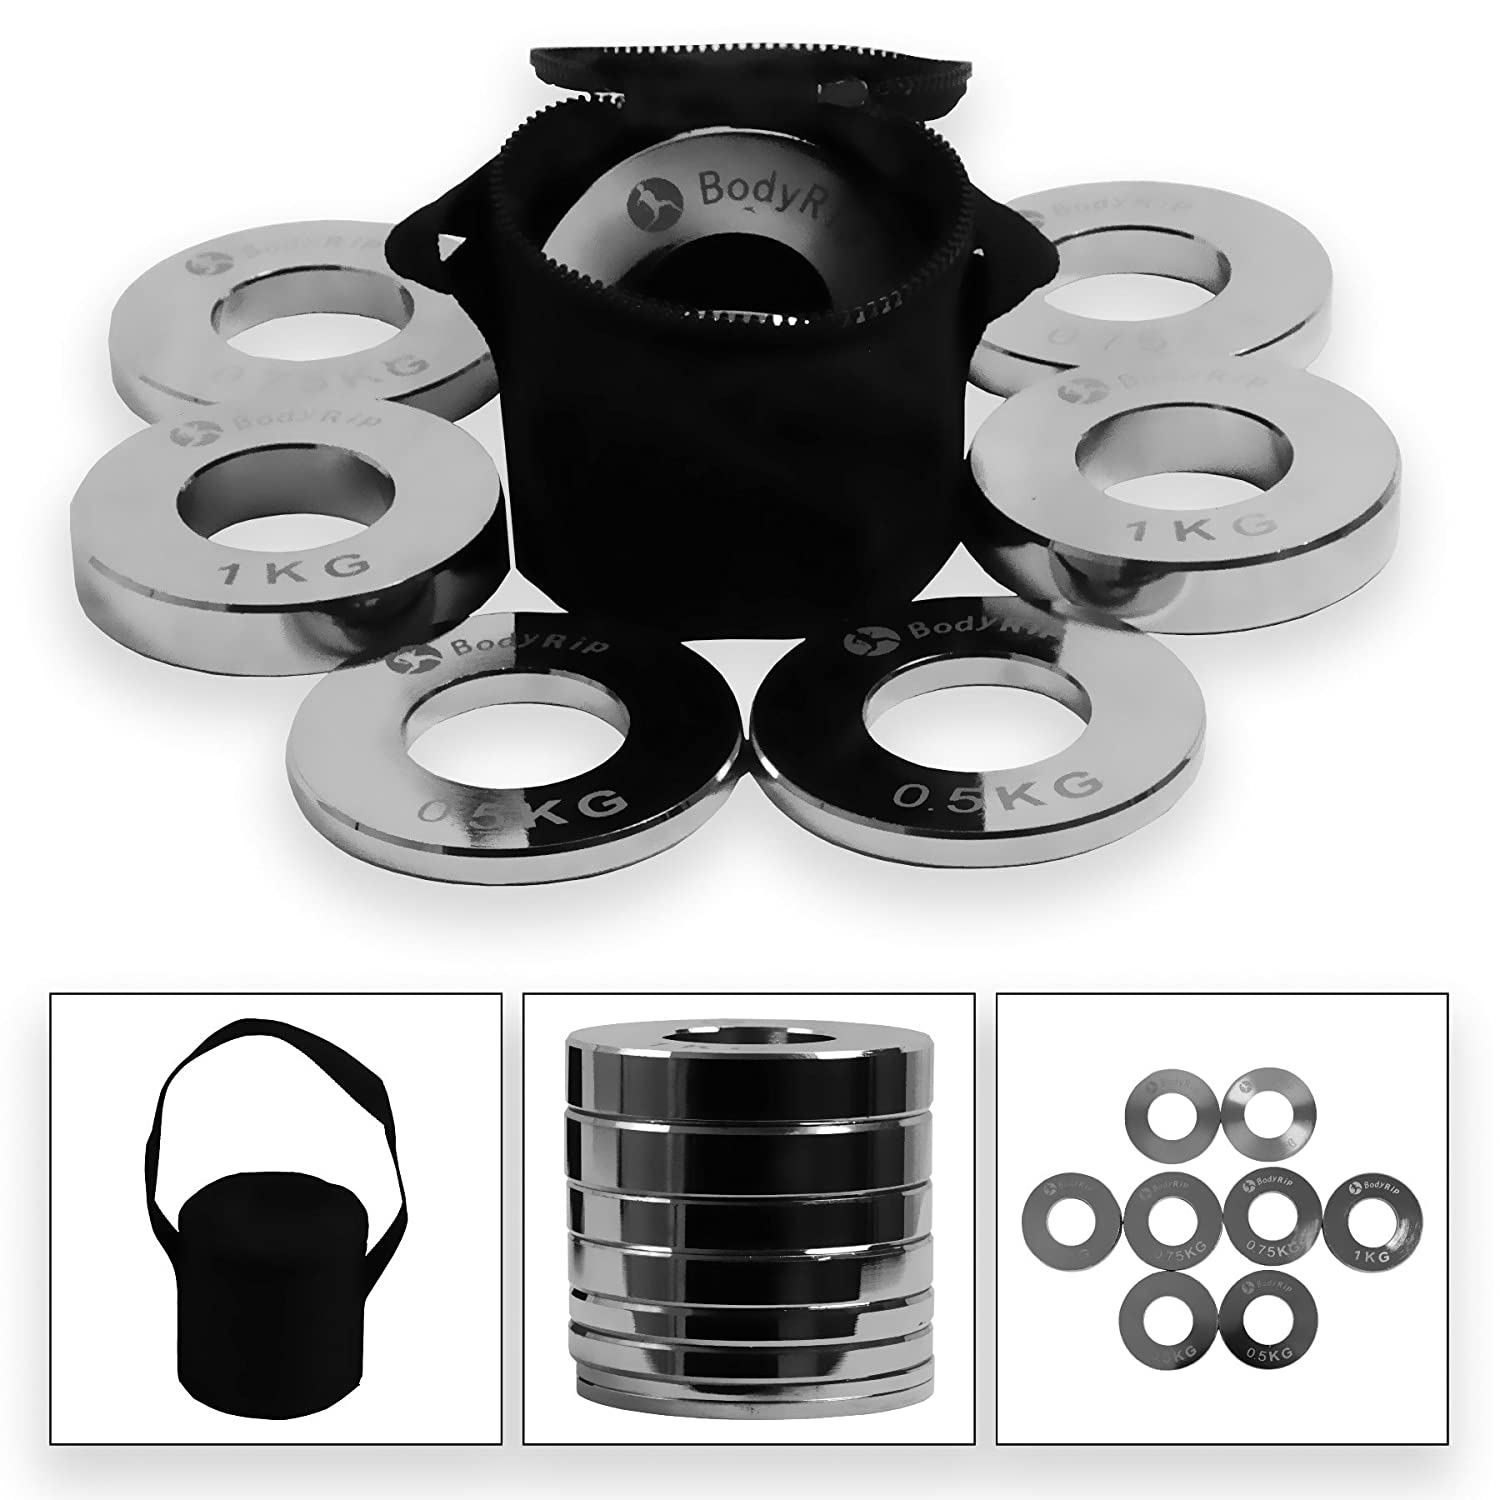 BodyRip Steel 2 Olympic Fraction Weight Plate SET 2 x 0.25kg 2 x 0.5kg 2 x 0.75kg 2 x 1kg Discs Low Weights